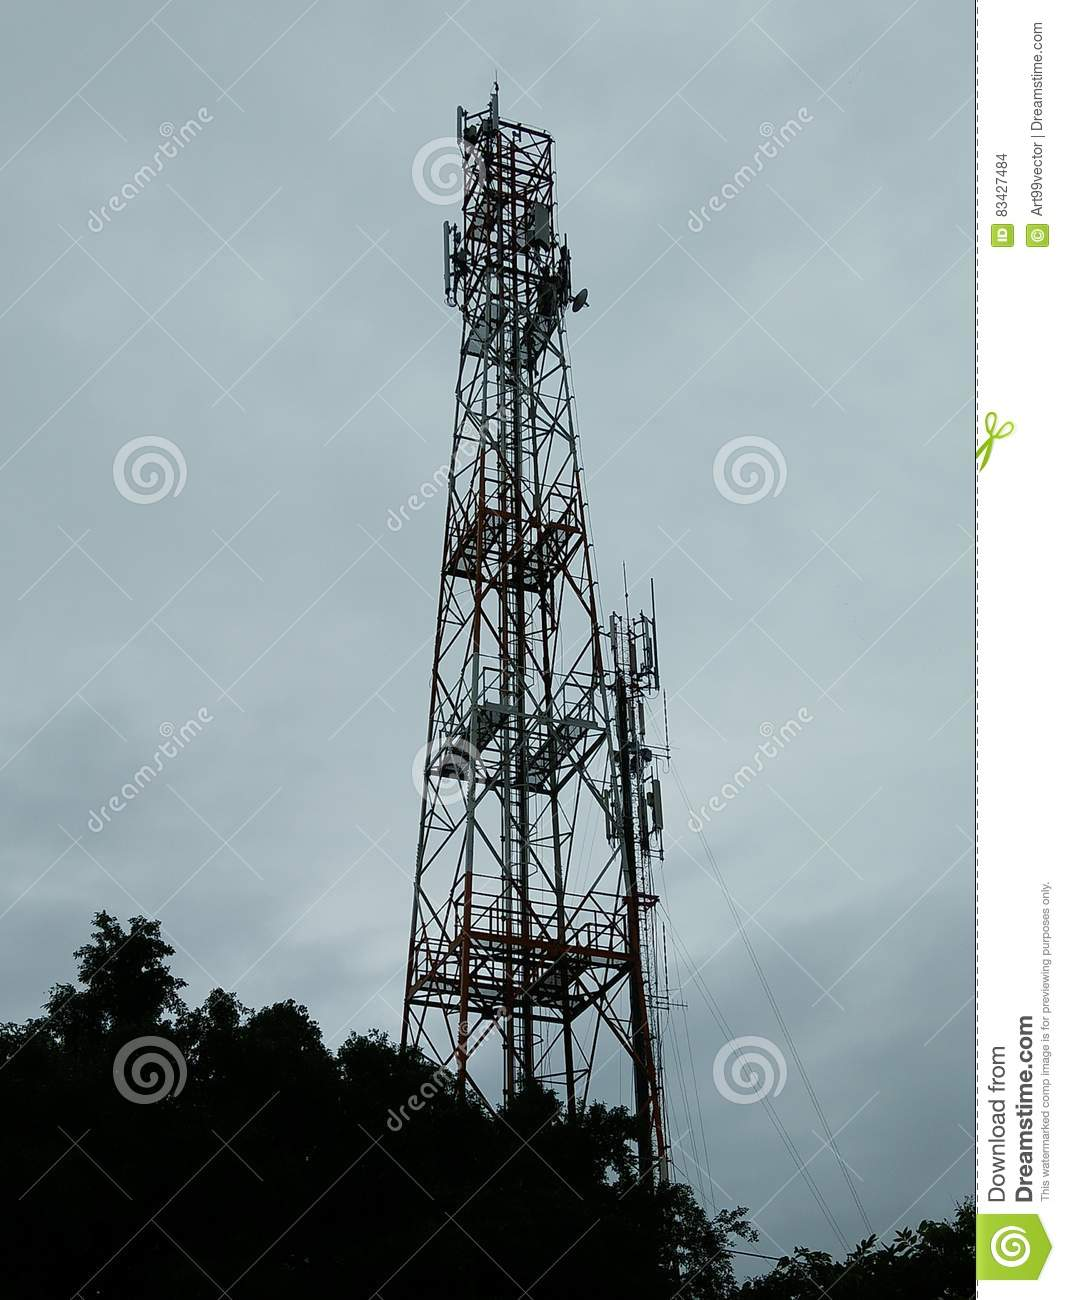 Communicate With The Cellular Network Stock Photo - Image of